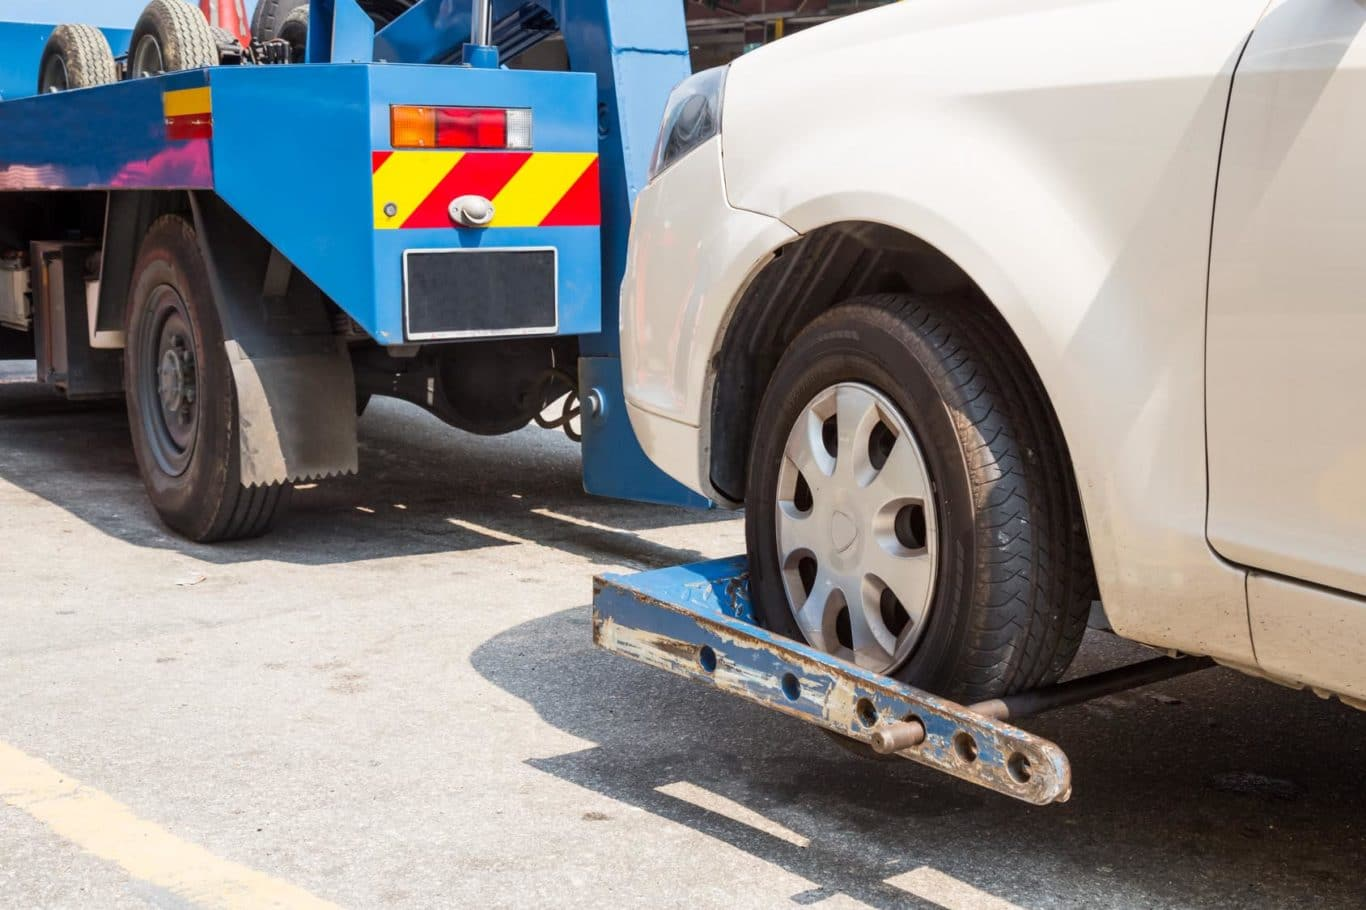 Monkstown expert Roadside Assistance services